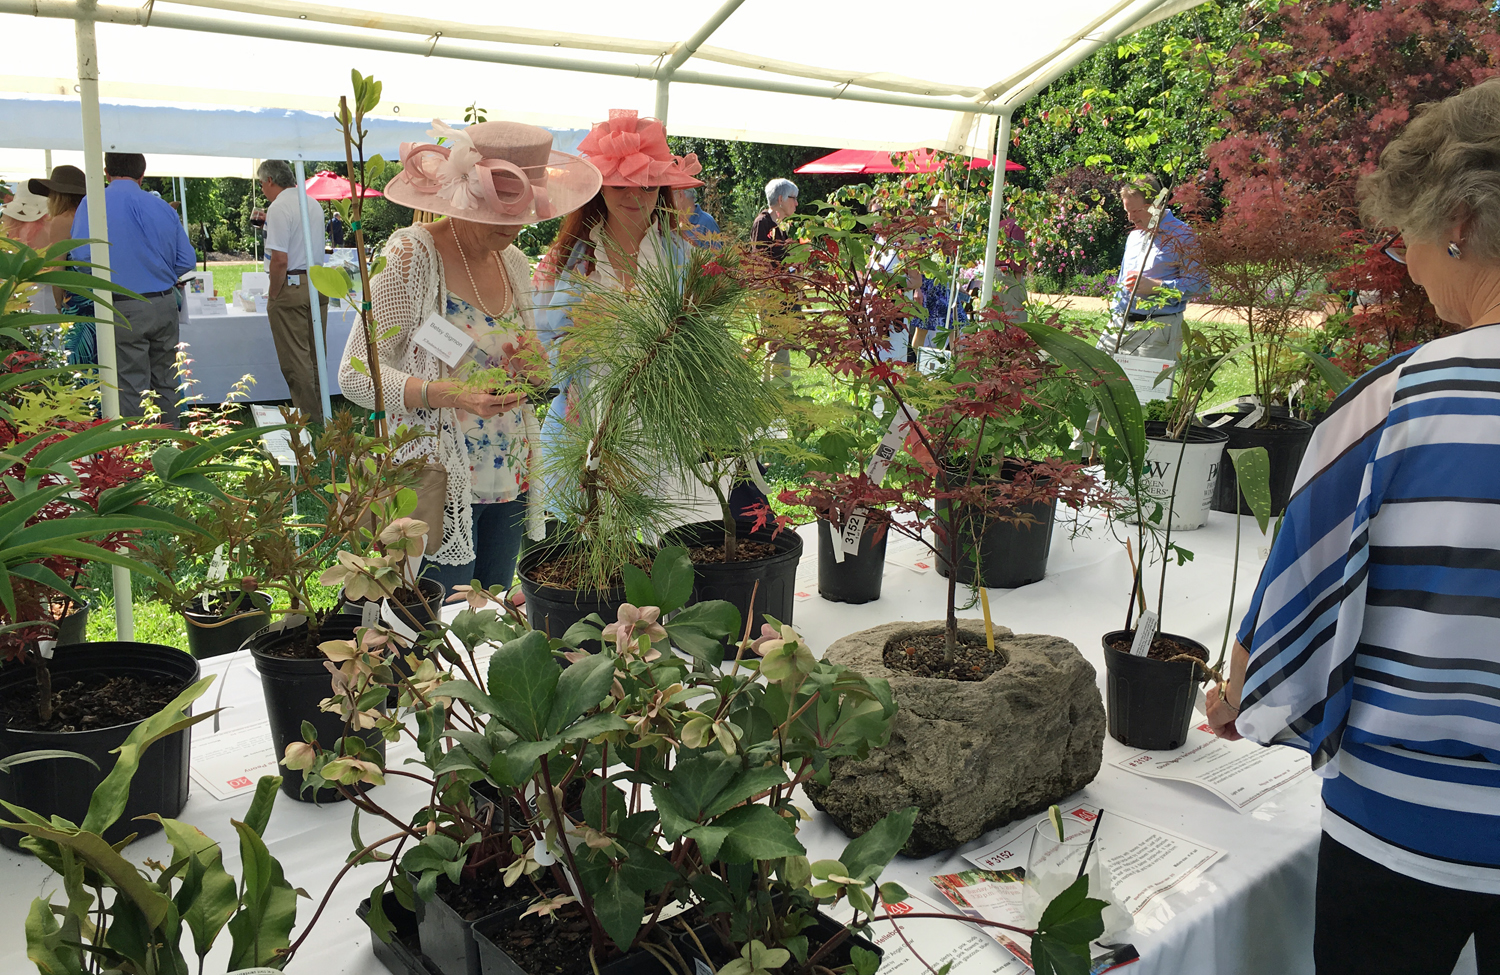 Fancy hats and beautiful plants were on display. The auction, which included plants and other items, raises funds for the arboretum.